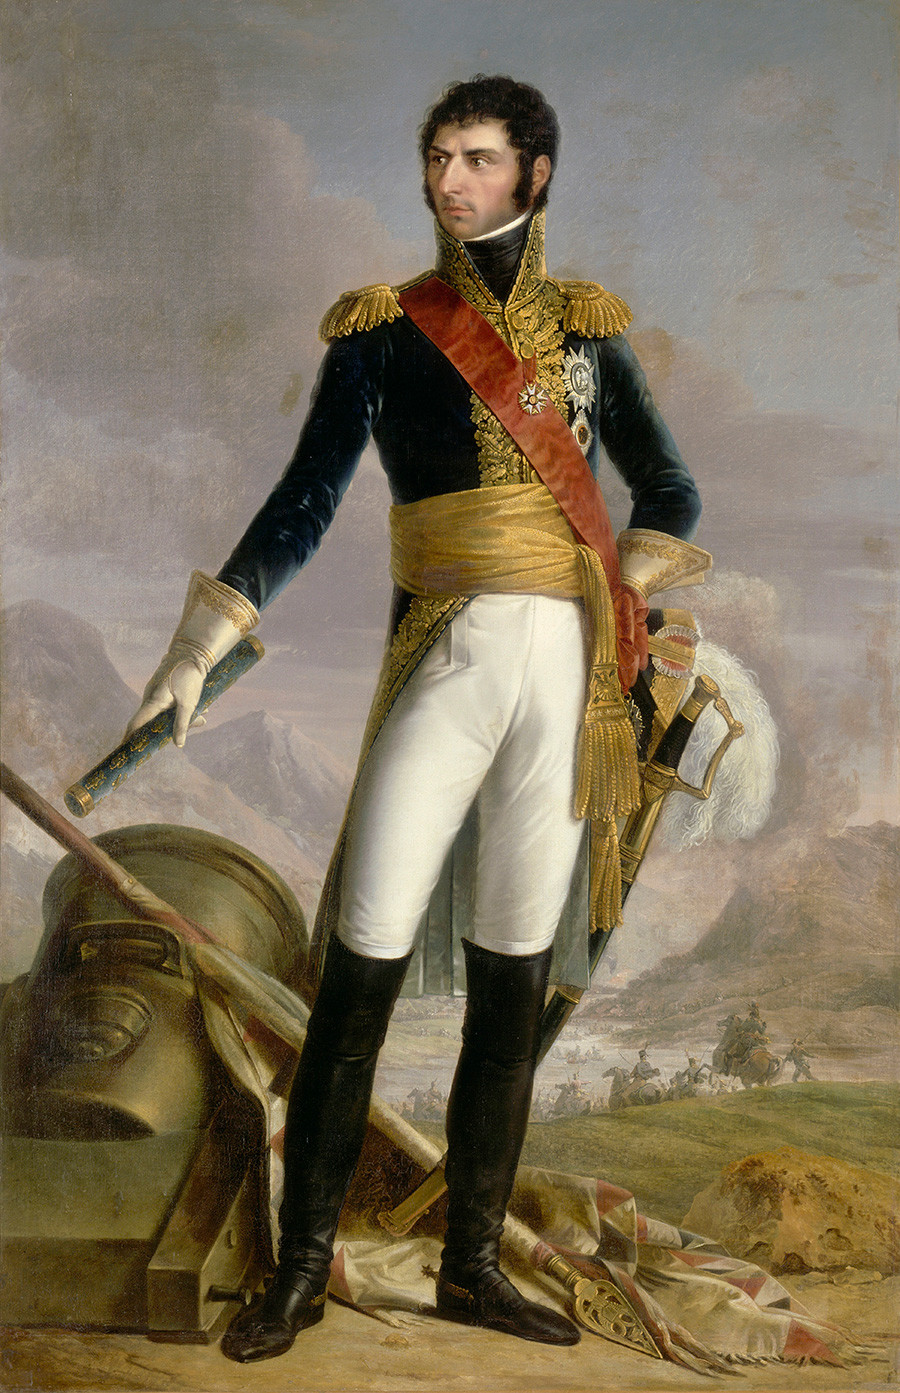 Jean Baptiste Bernadotte, Marshal of France, King of Sweden and Norway, 1818 after a painting by Francois Joseph Kinson